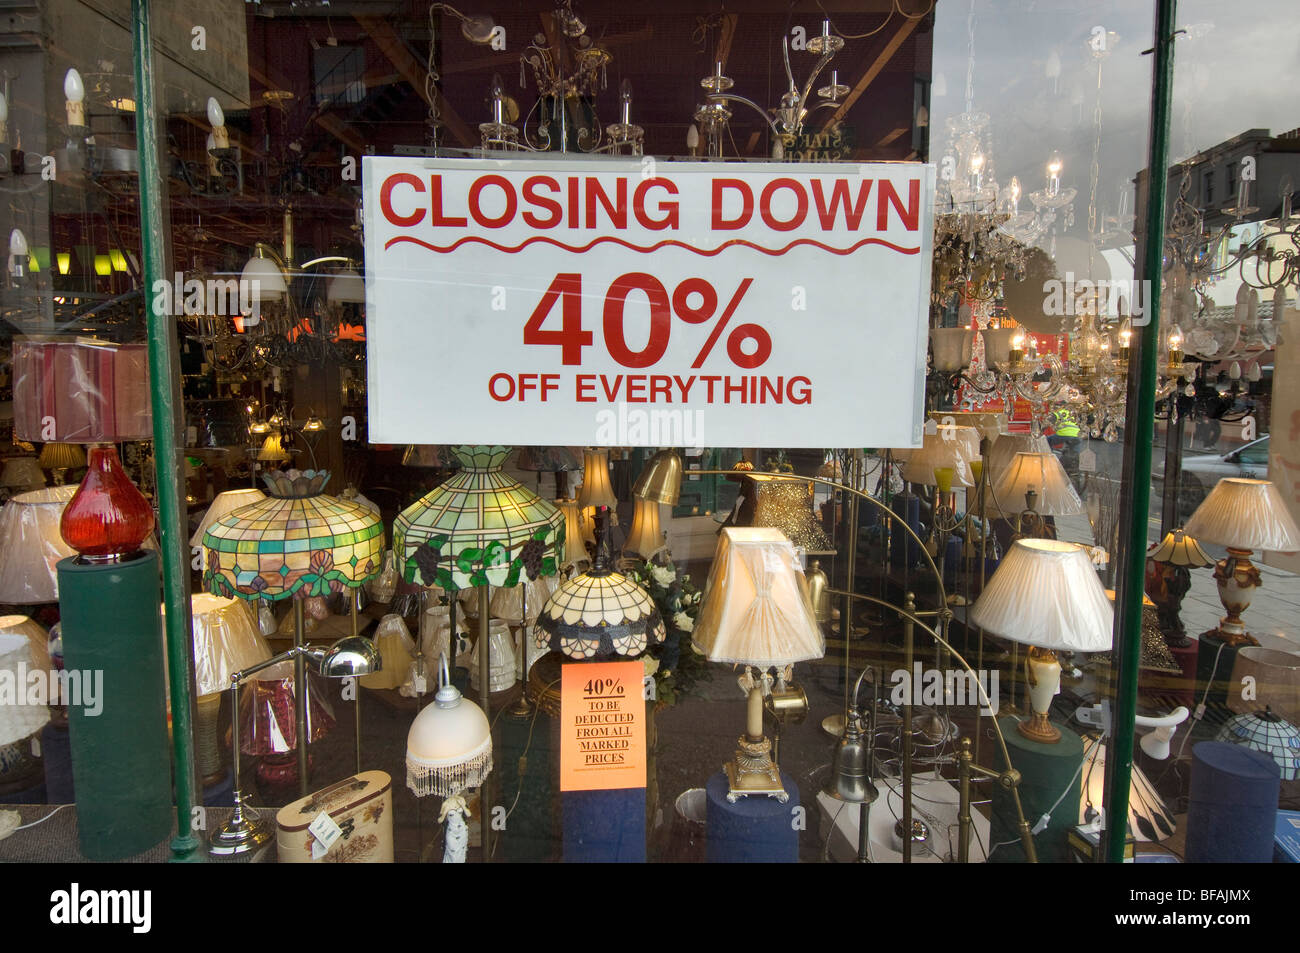 A lighting shop offers a 40% discount as part of its closing down sale. It is a victim of the recession in Britain - Stock Image